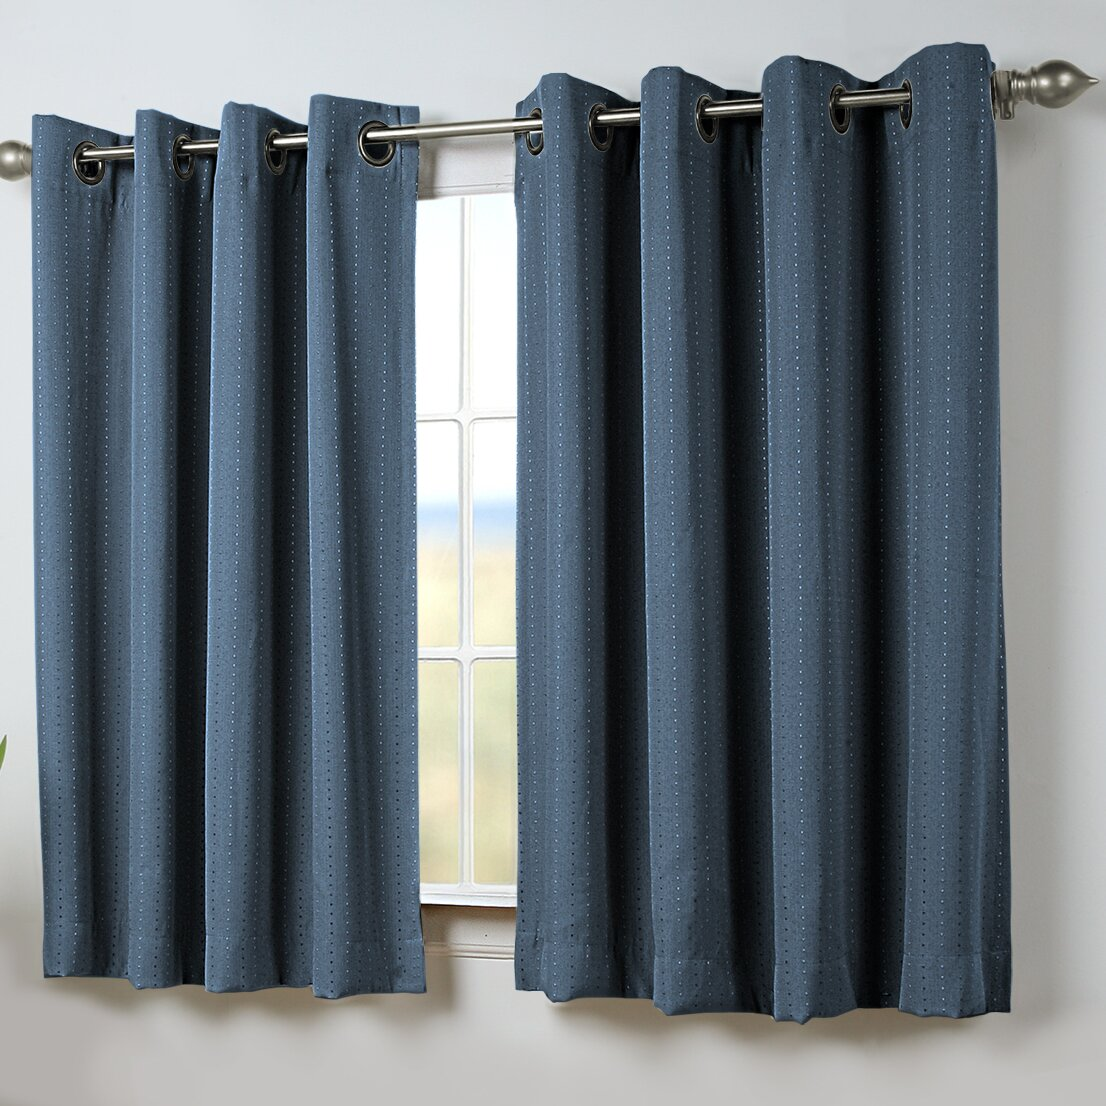 brayden studio louie short room darkening thermal single curtain panel